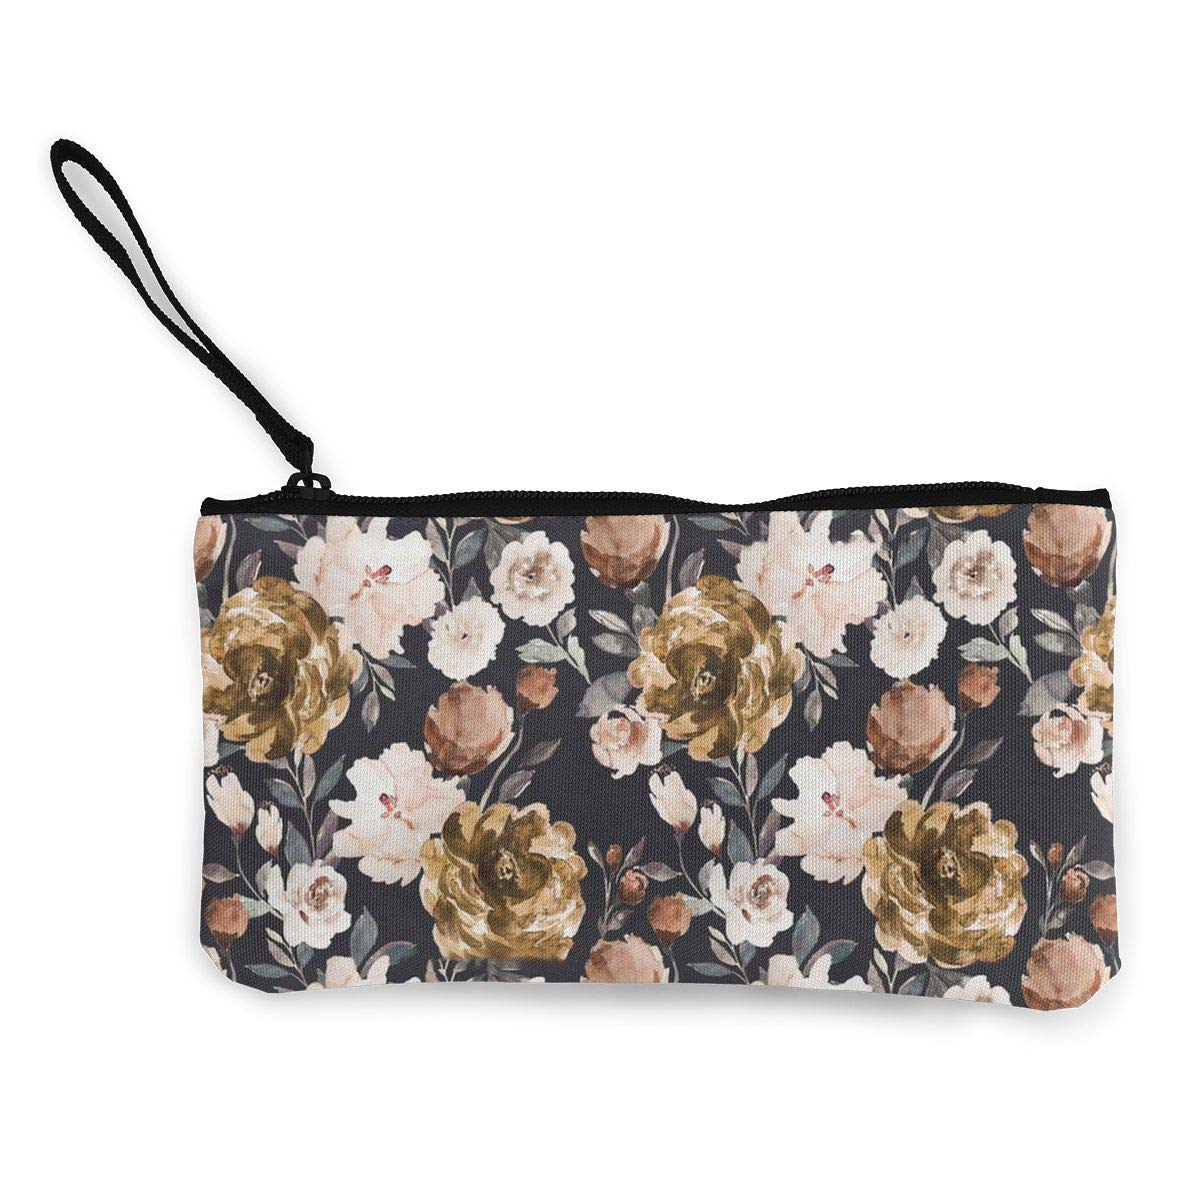 Autumn Cream Peonies Pattern Canvas Coin Purse Assorted Change Cash Bag With Zip